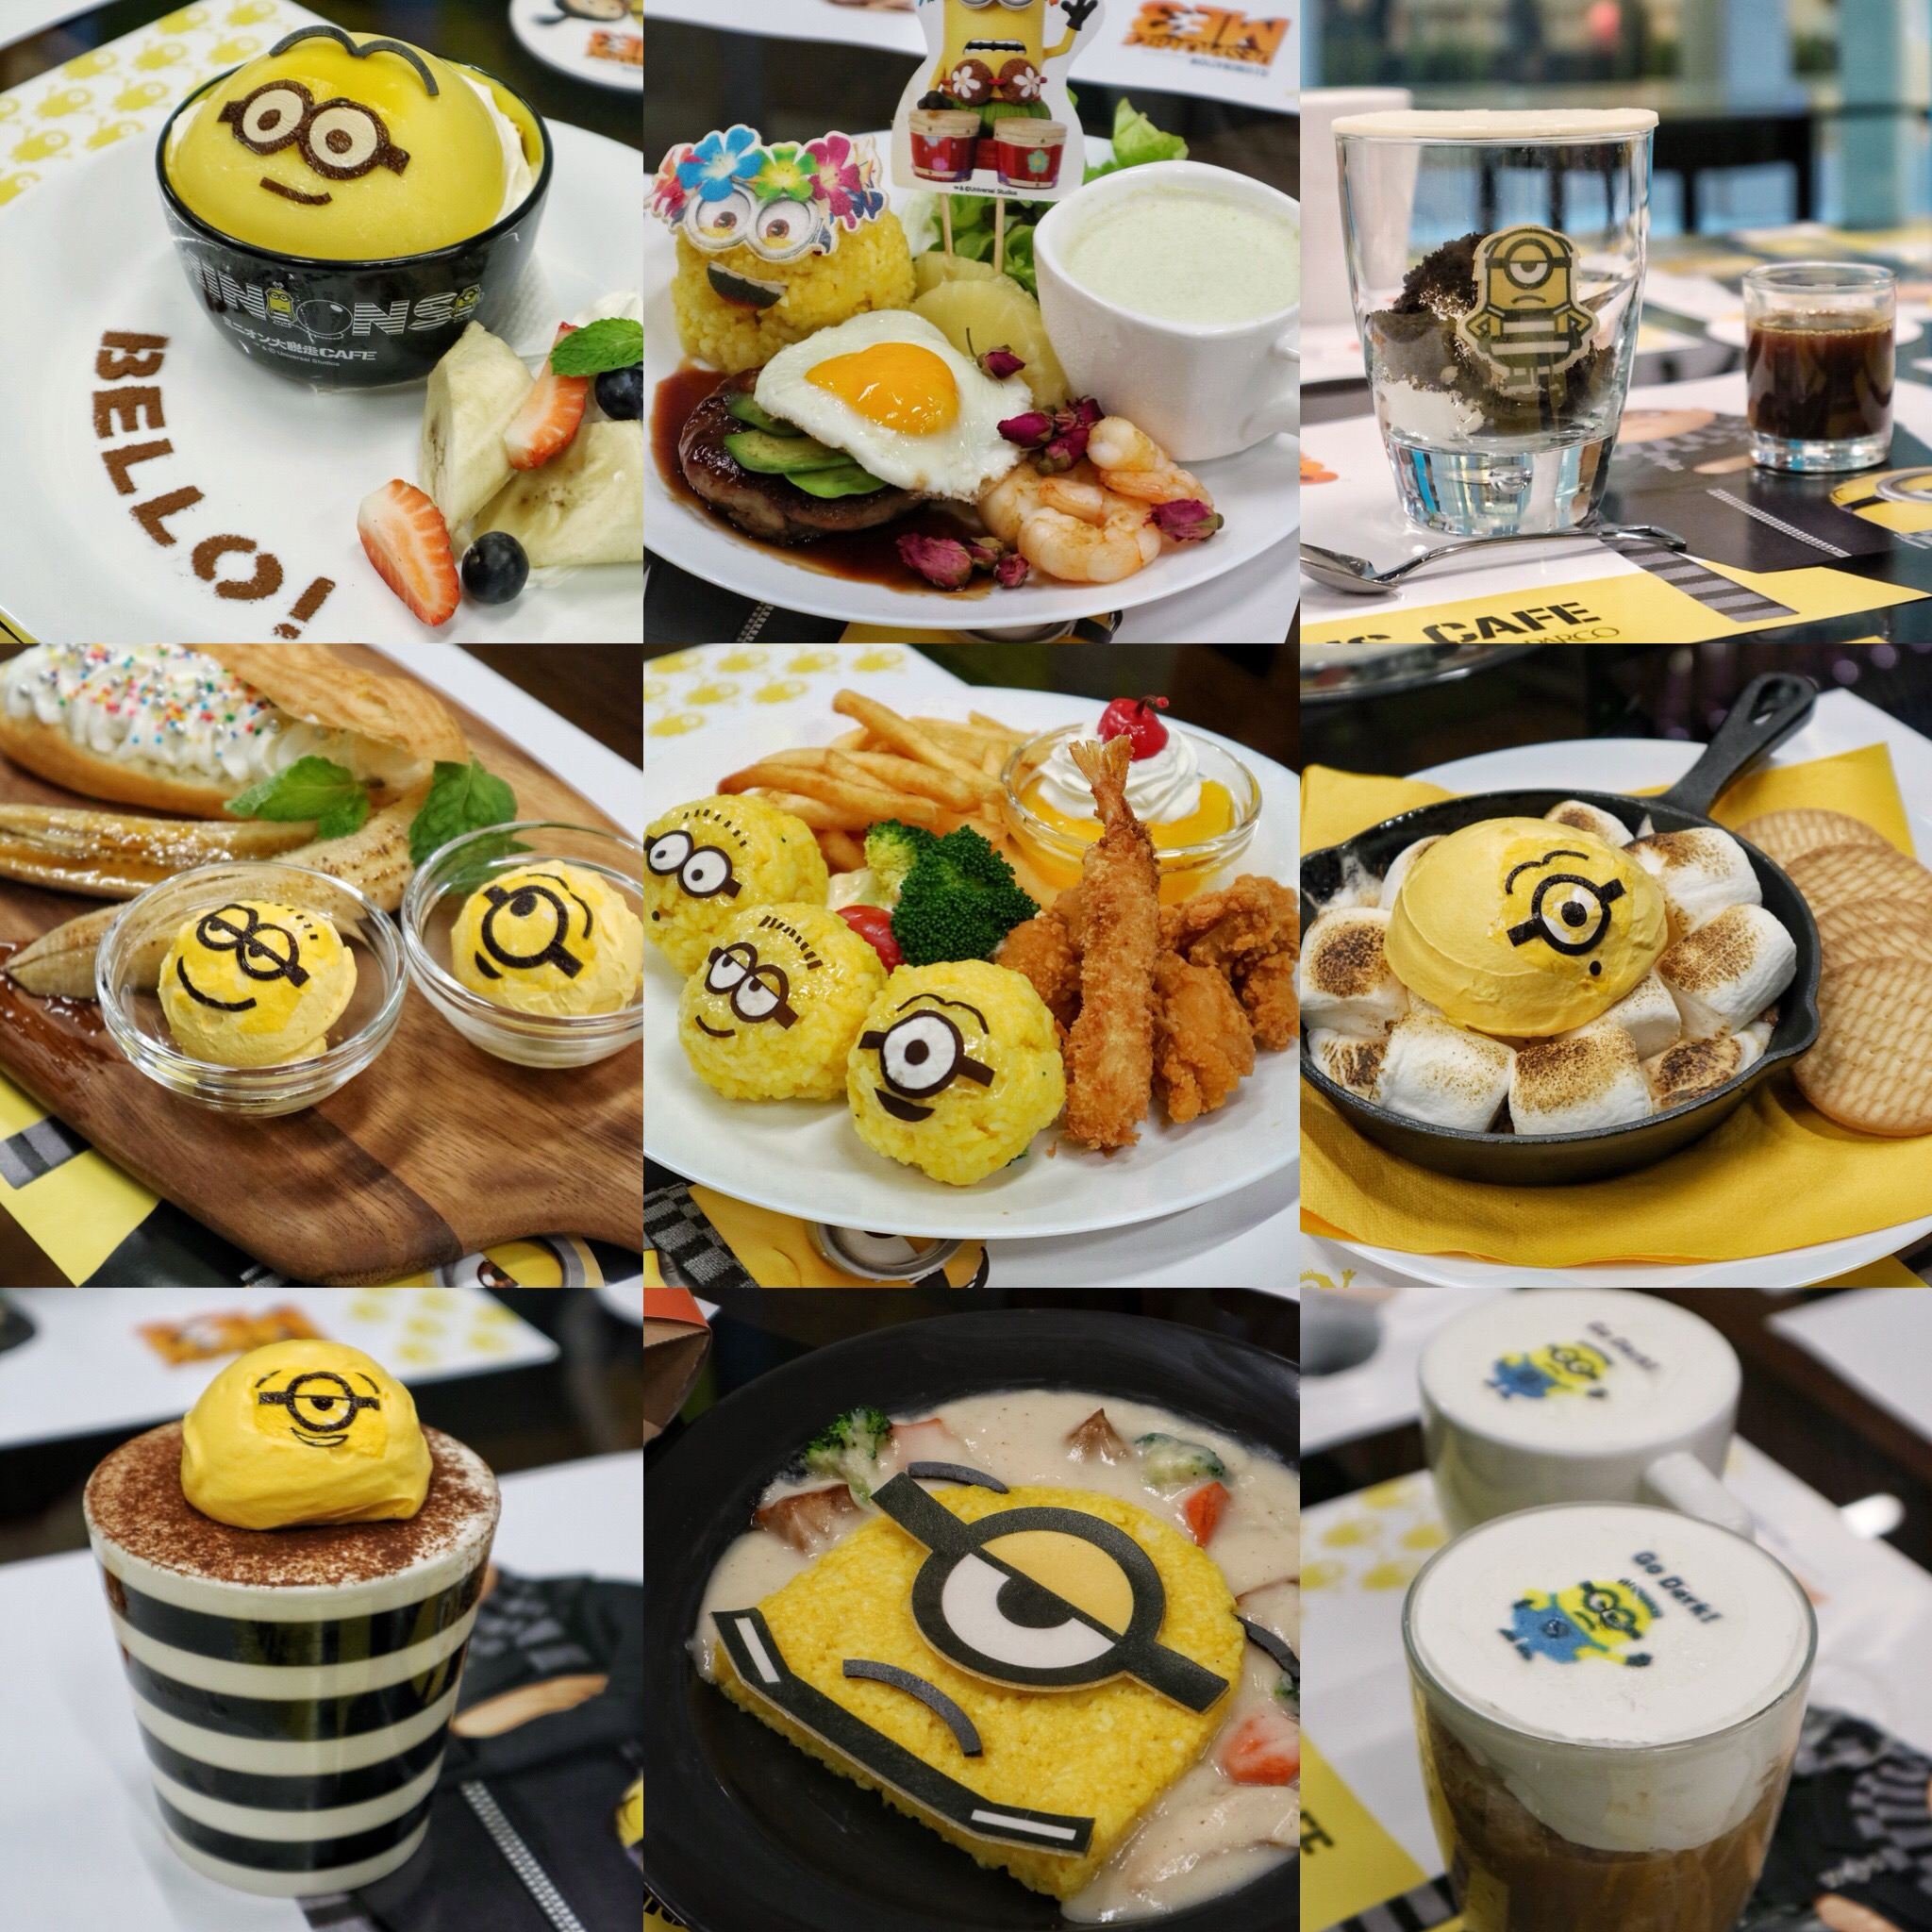 (New) Minions Café: Say Bello to Singapore's First-Ever Minions Café at Orchard Central